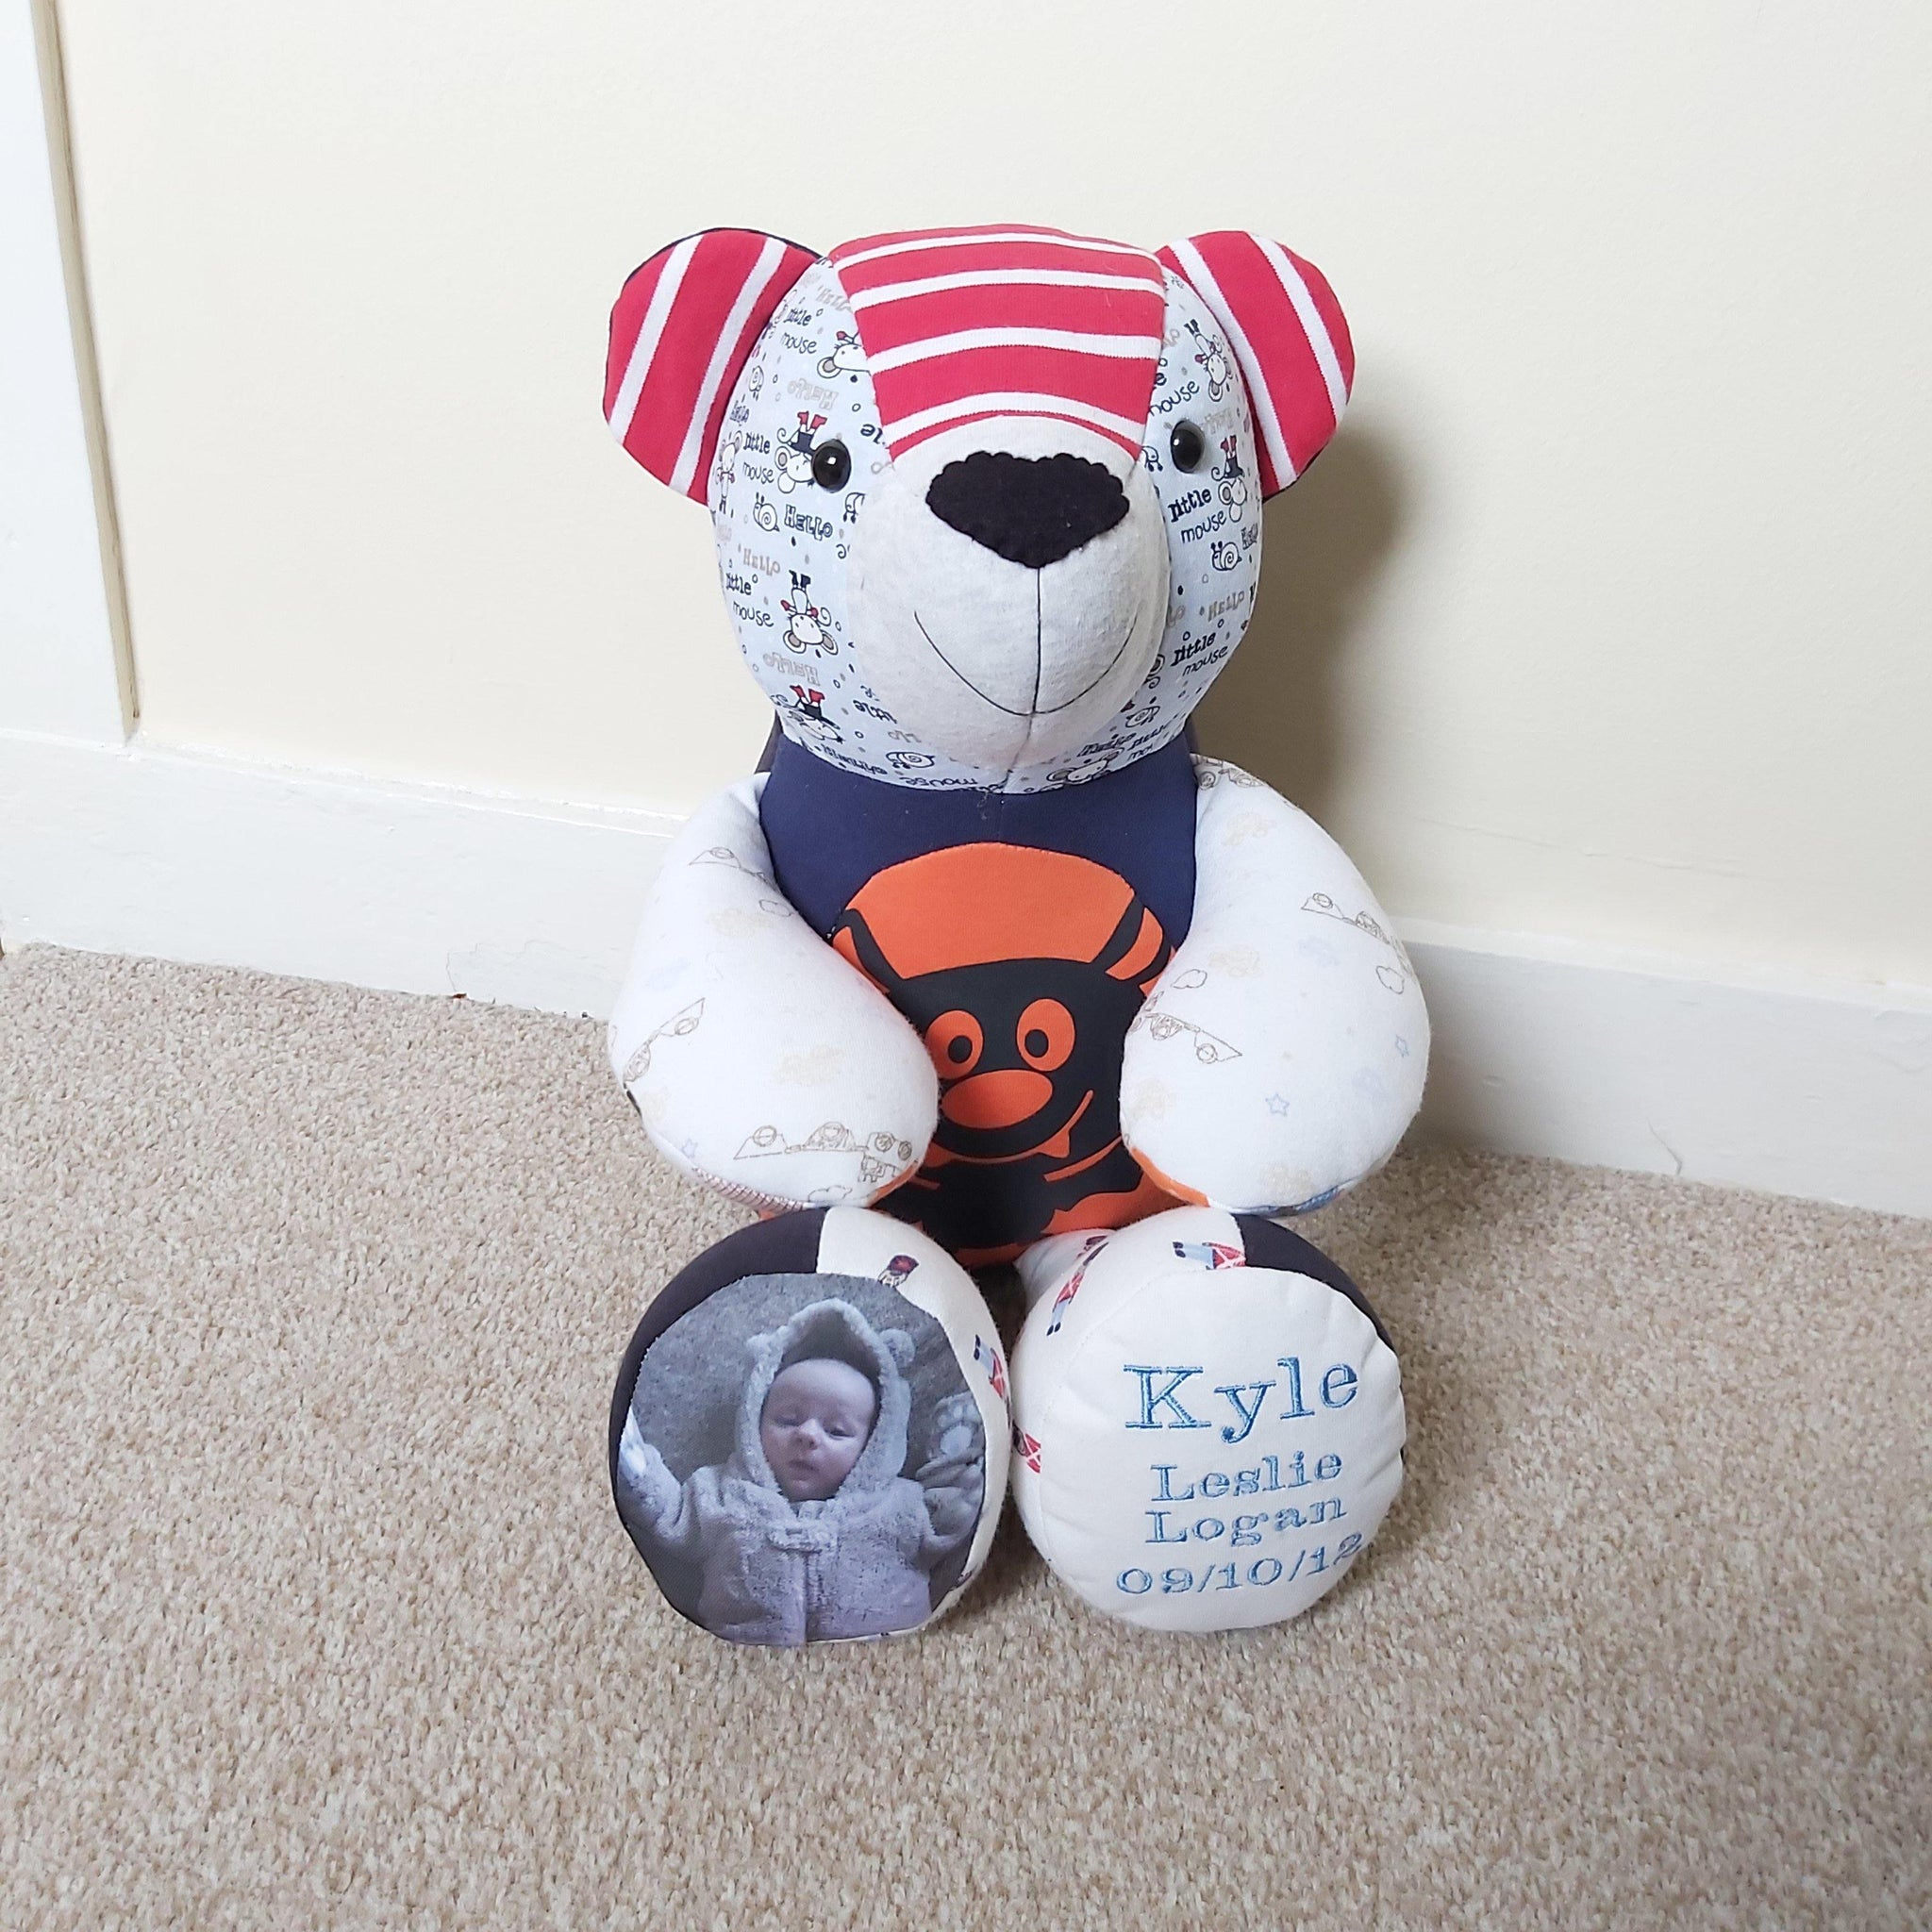 Personalised photo keepsake memory bear by sew Tilley. Add a photo and embroidery to make an extra special memory keepsake.